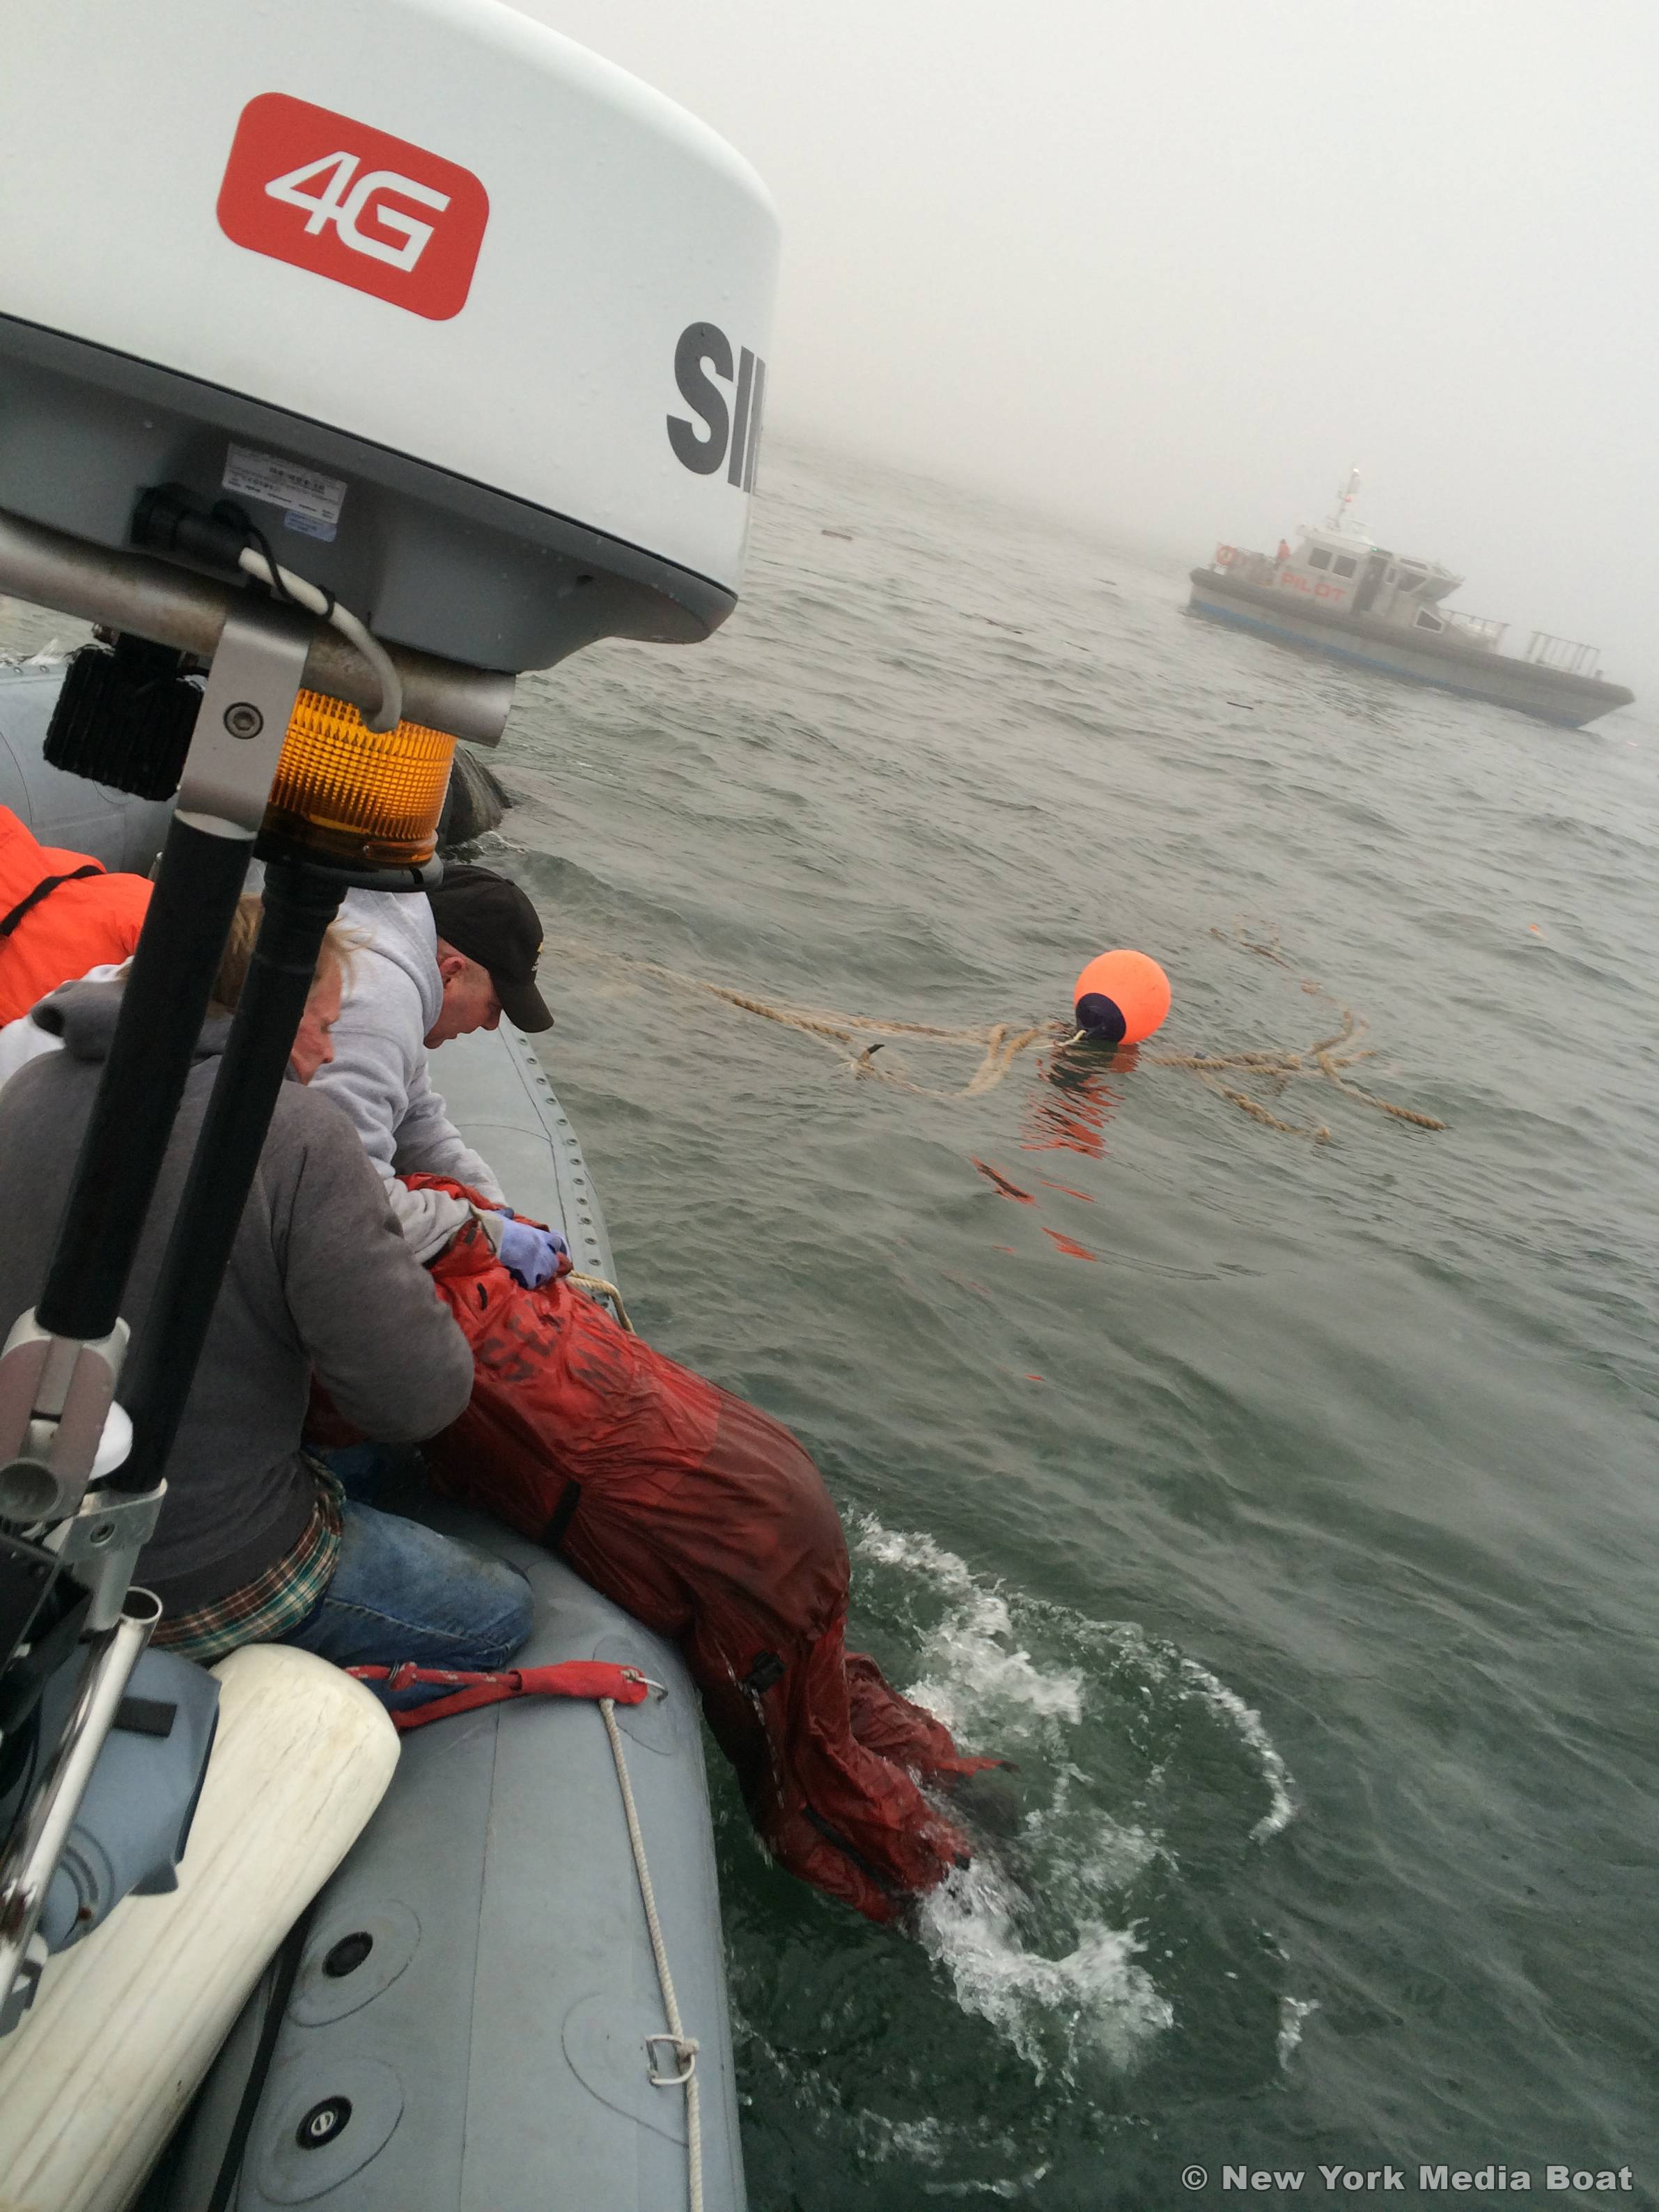 New York Media Boat Rescue